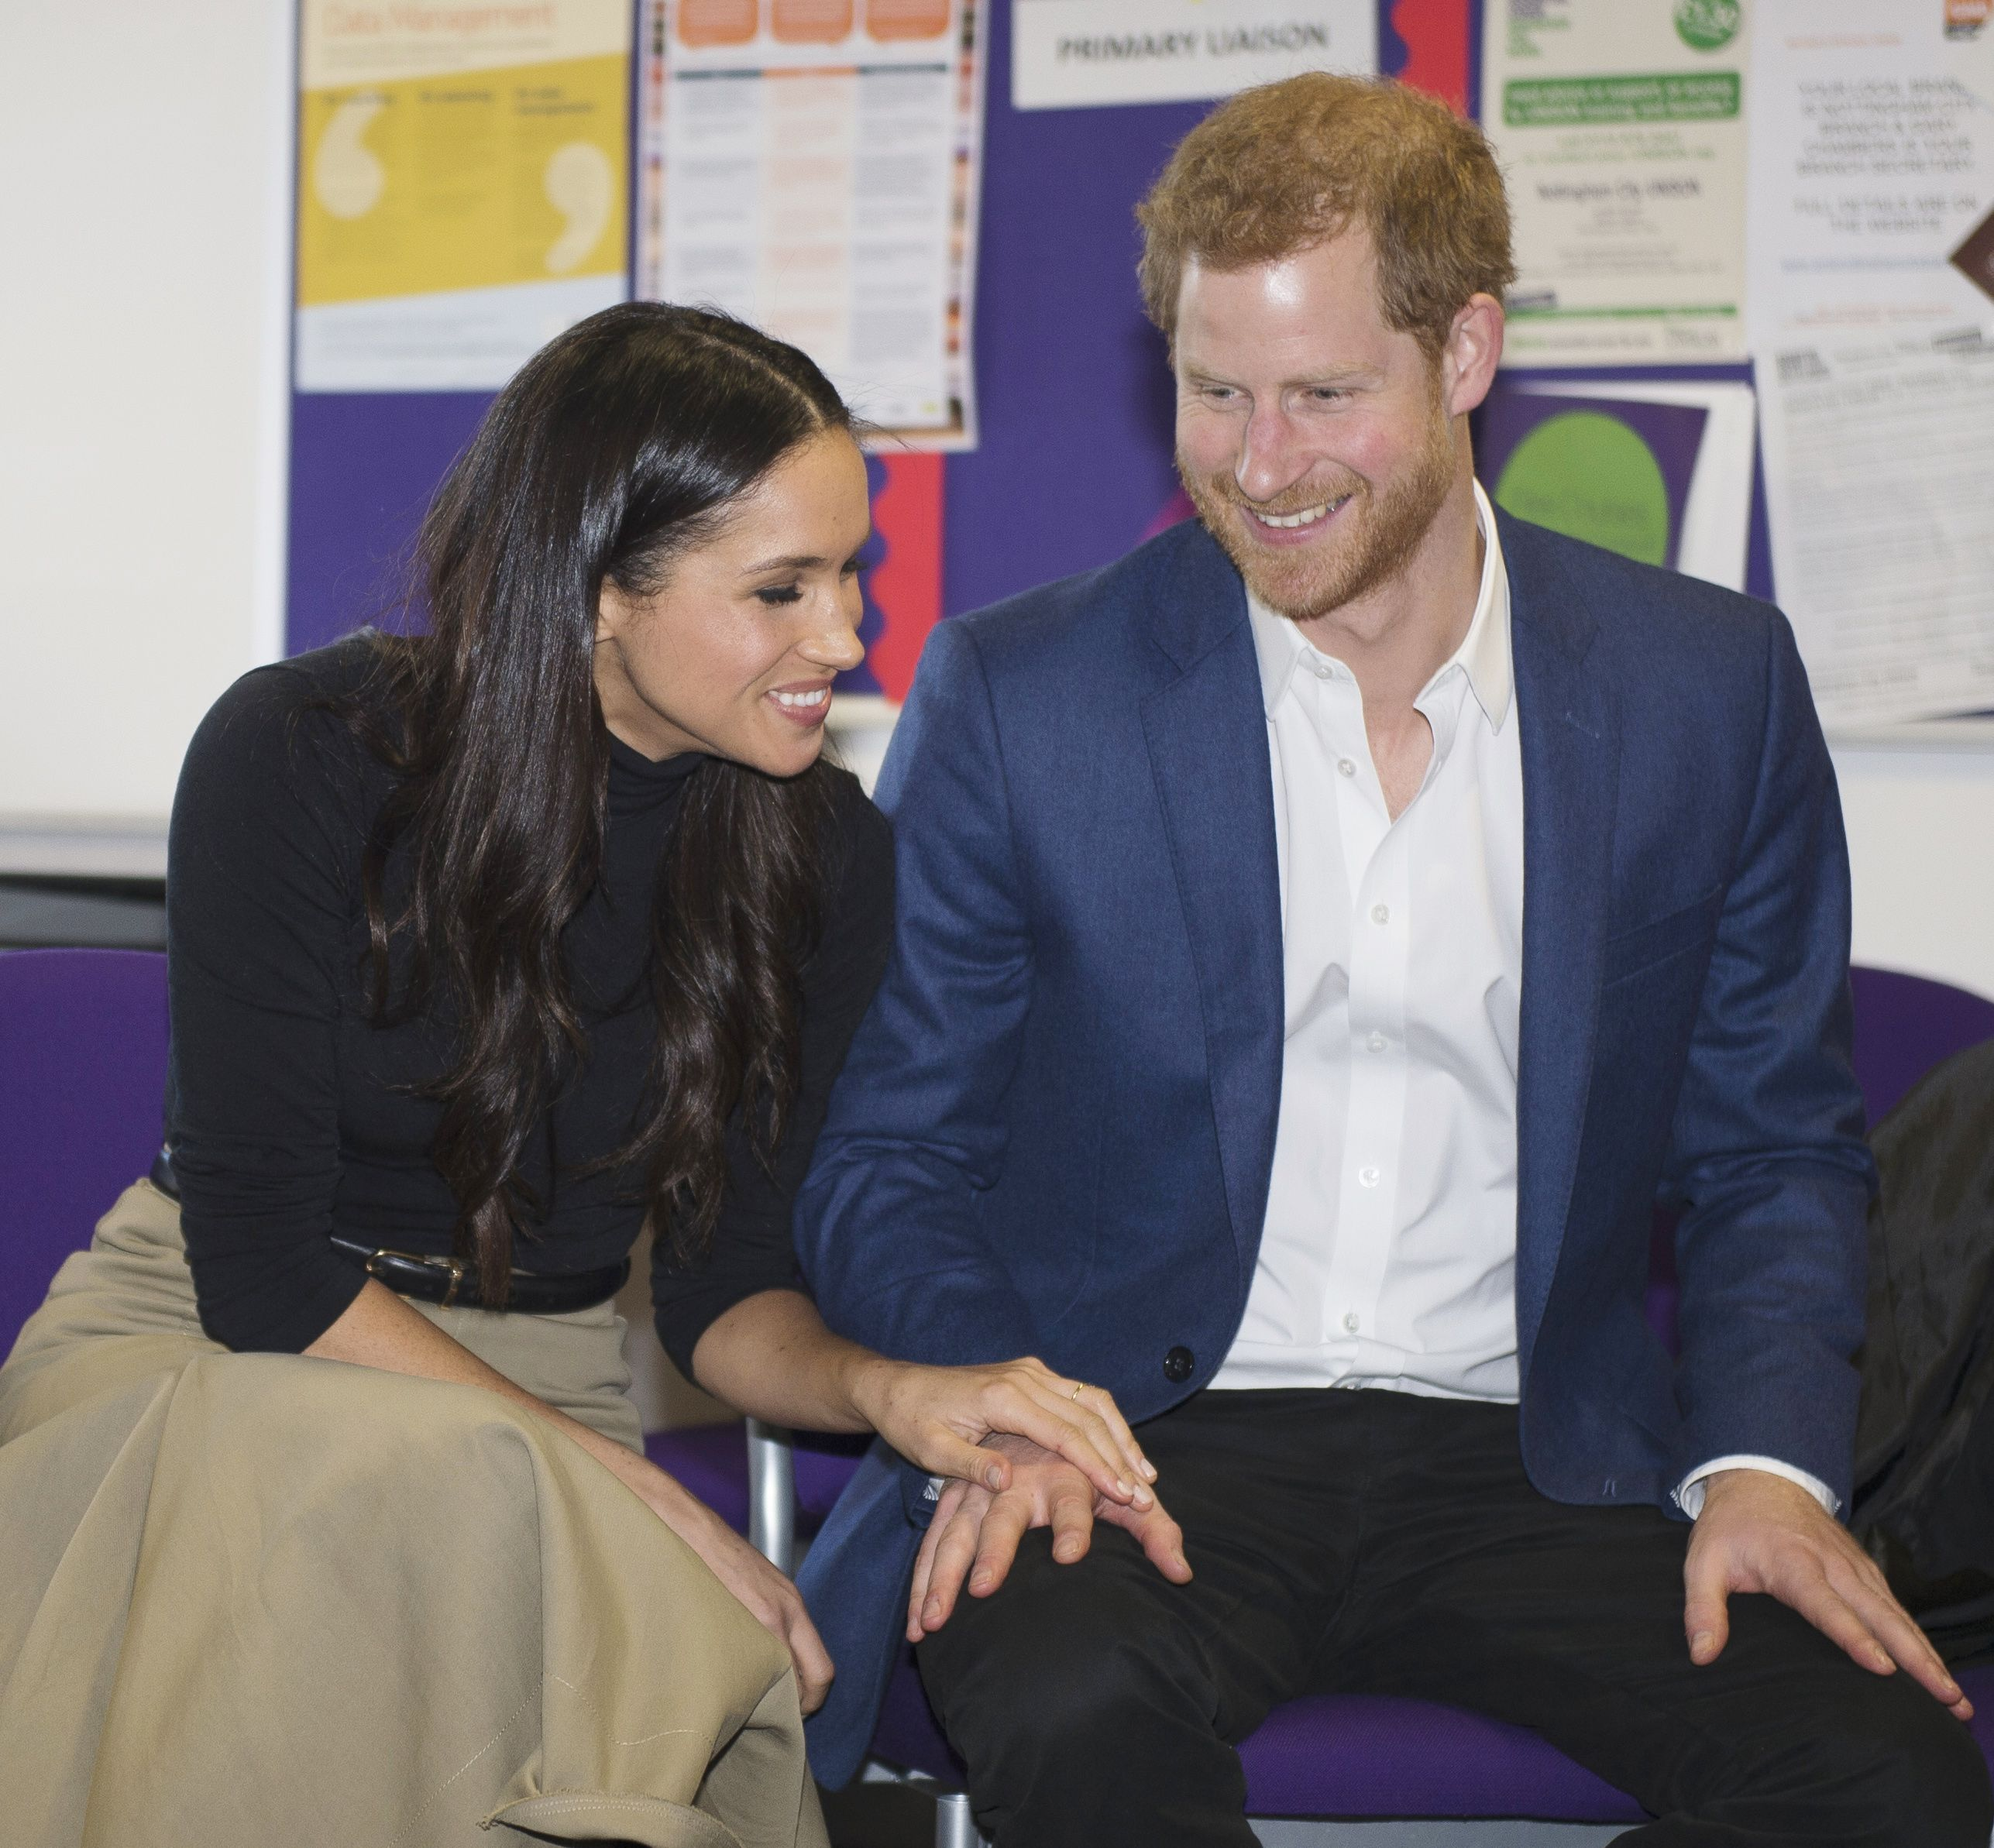 The adorable Harry and Meghan moment you may have missed at the polo The adorable Harry and Meghan moment you may have missed at the polo new pics